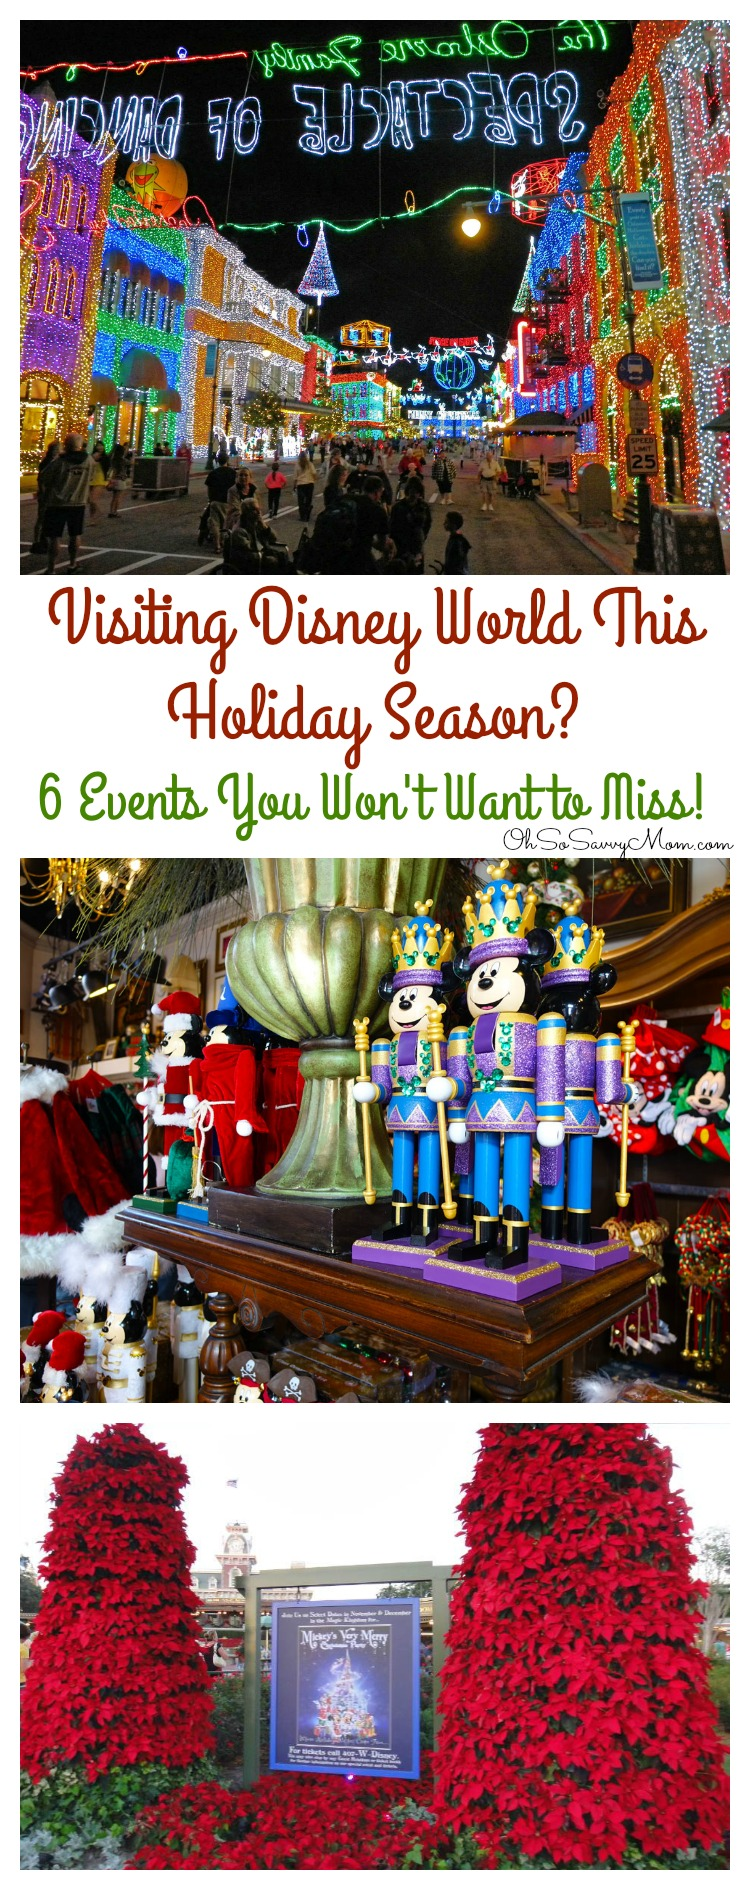 Holiday Events at Disney World